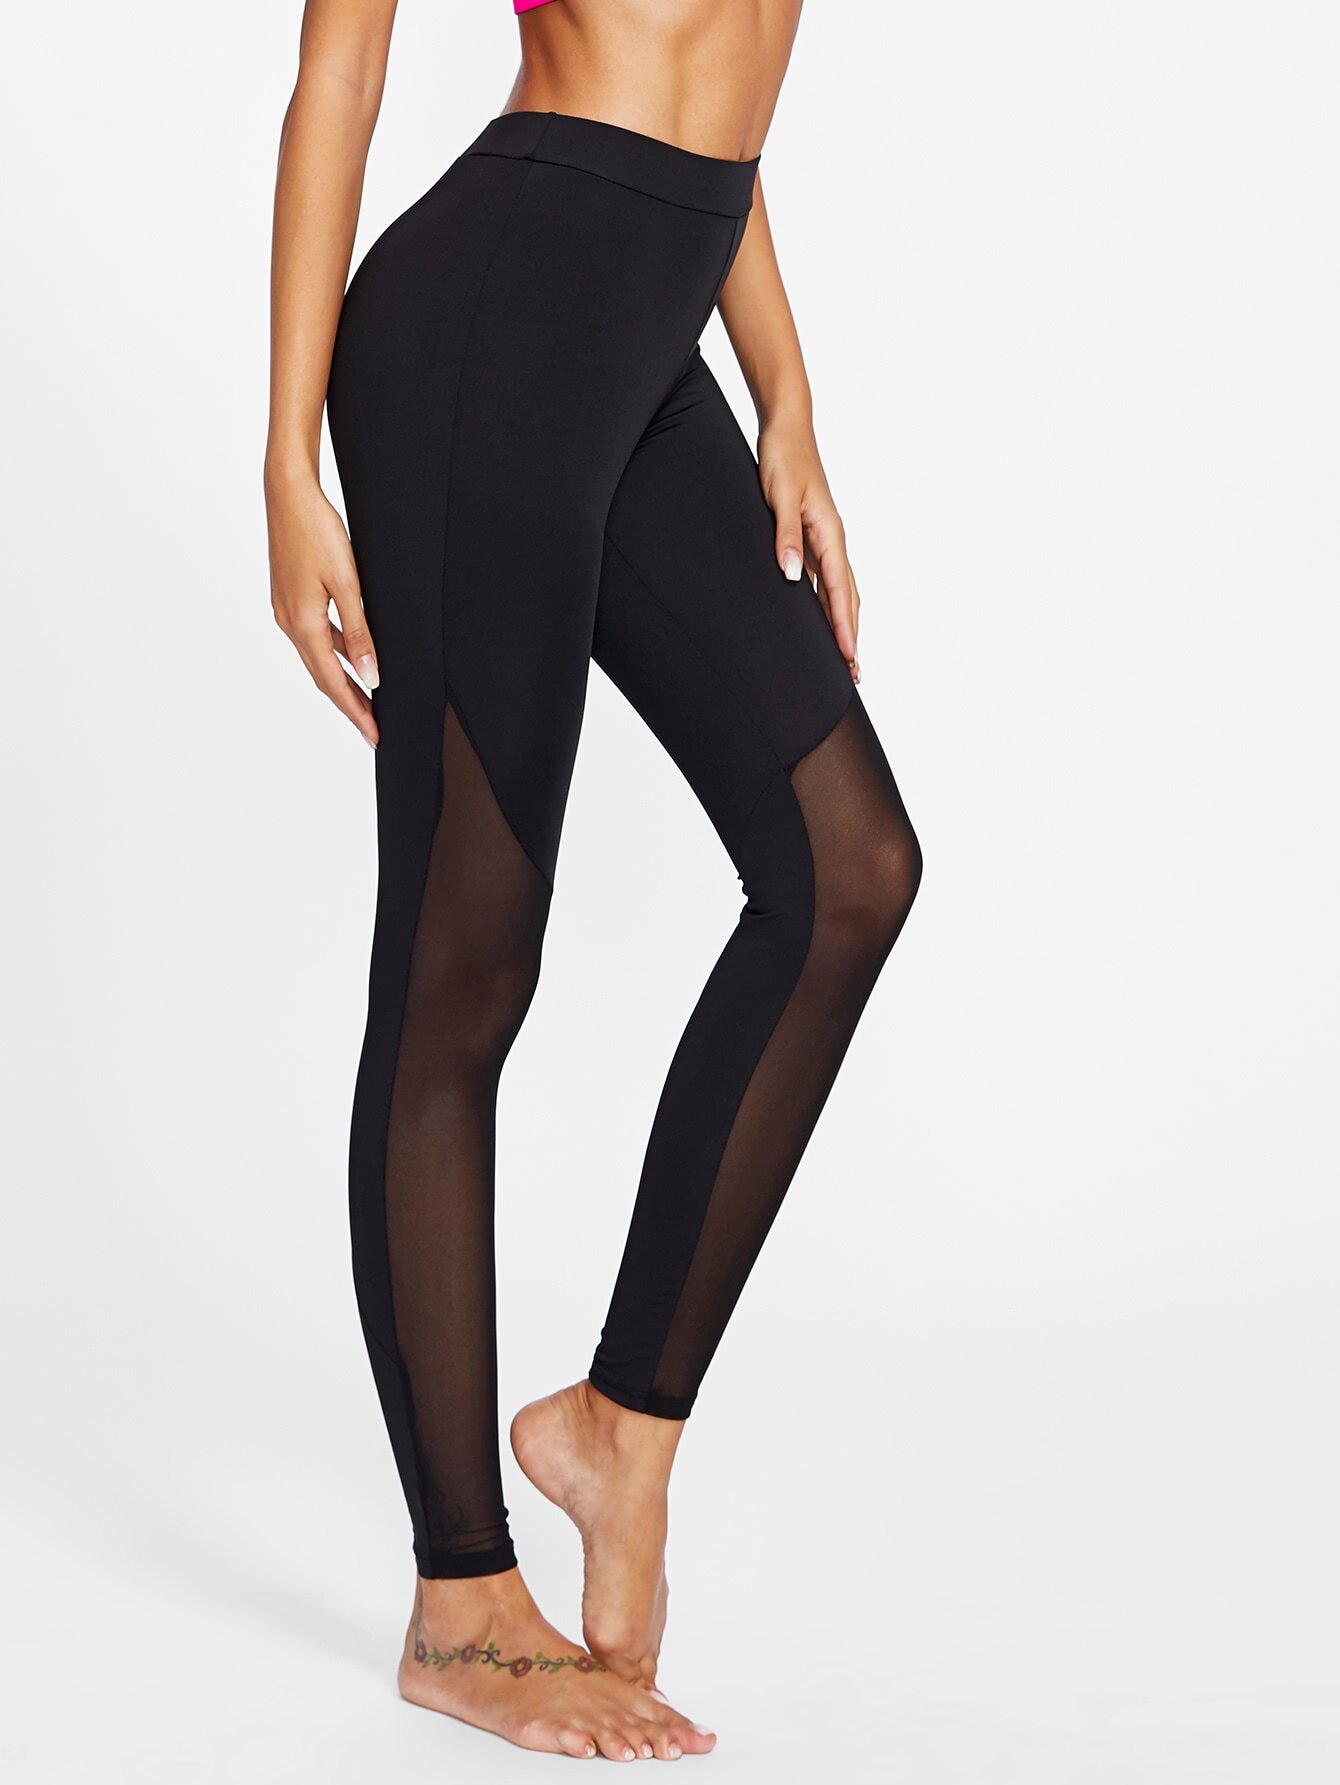 Active Mesh Panel Leggings leggings170915101